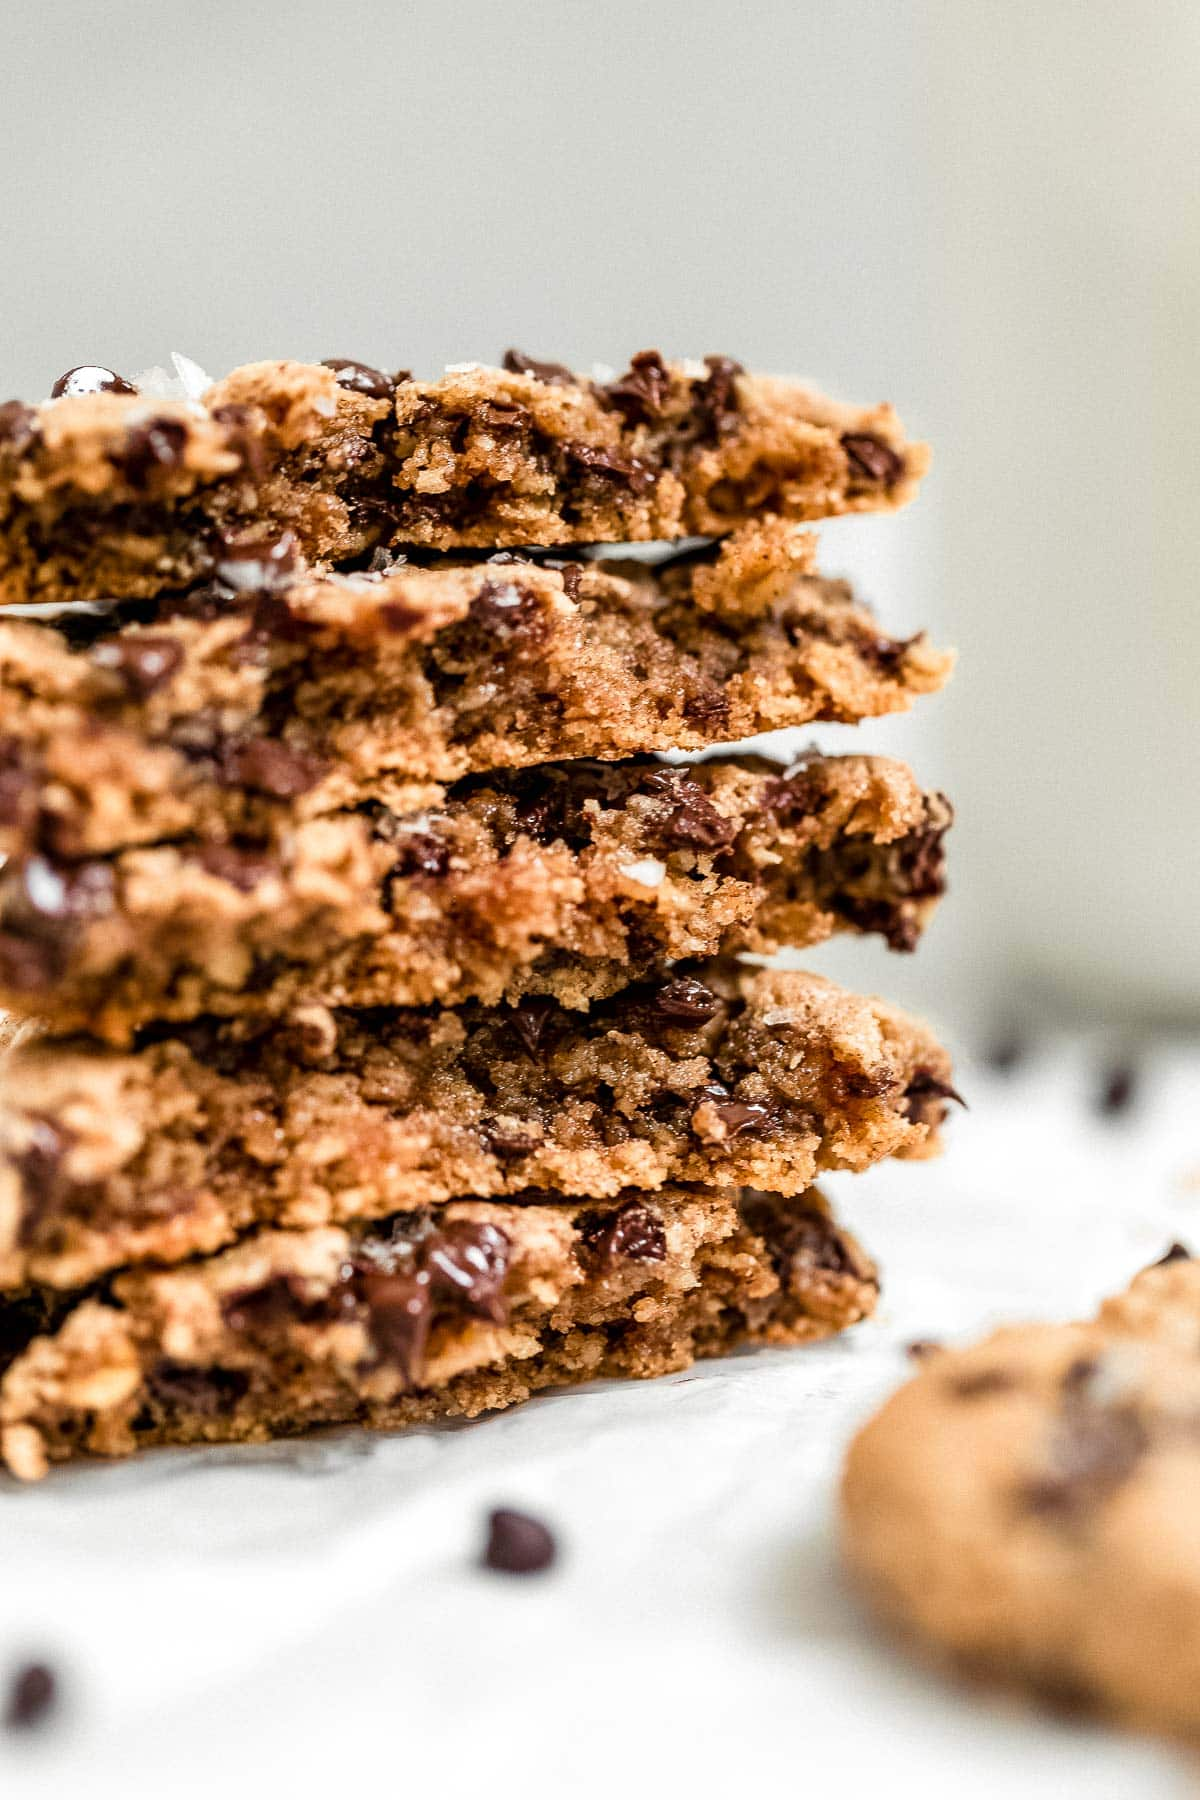 Vegan oatmeal chocolate chip cookies stacked on each other with milk in the background.